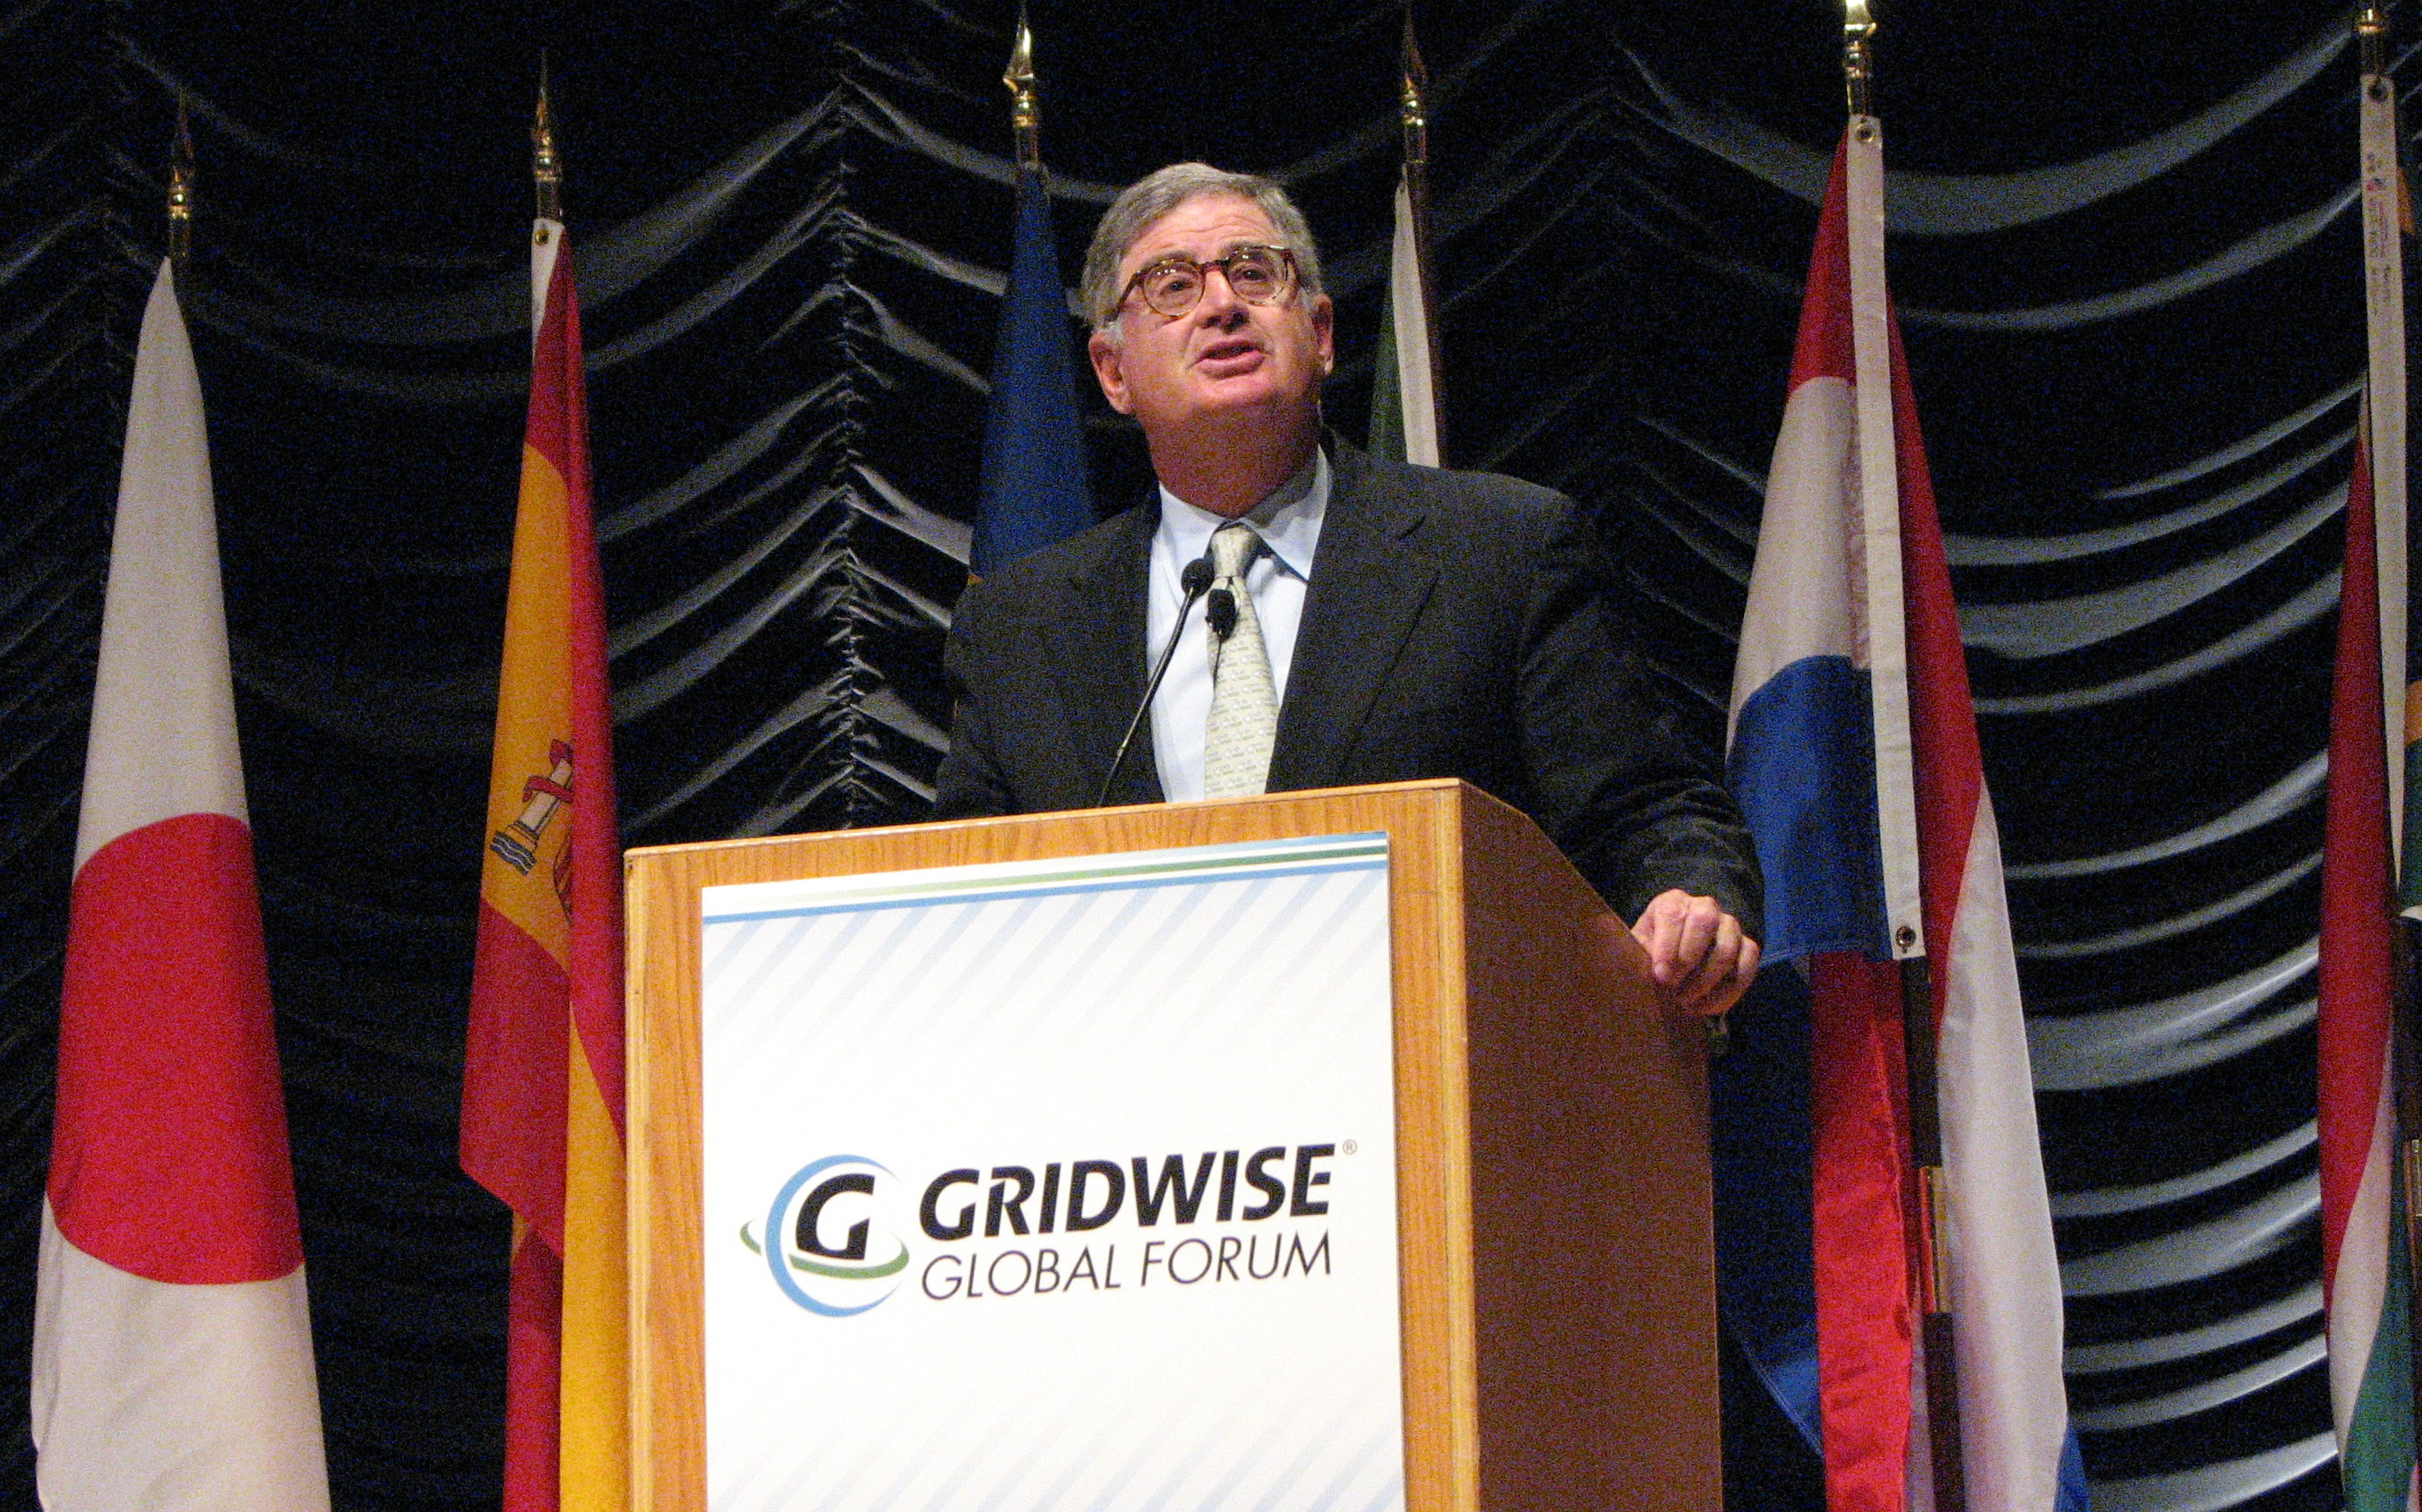 IBM CEO Sam Palmisano delivers the keynote talk at the GridWise Global Forum in Washington, D.C.